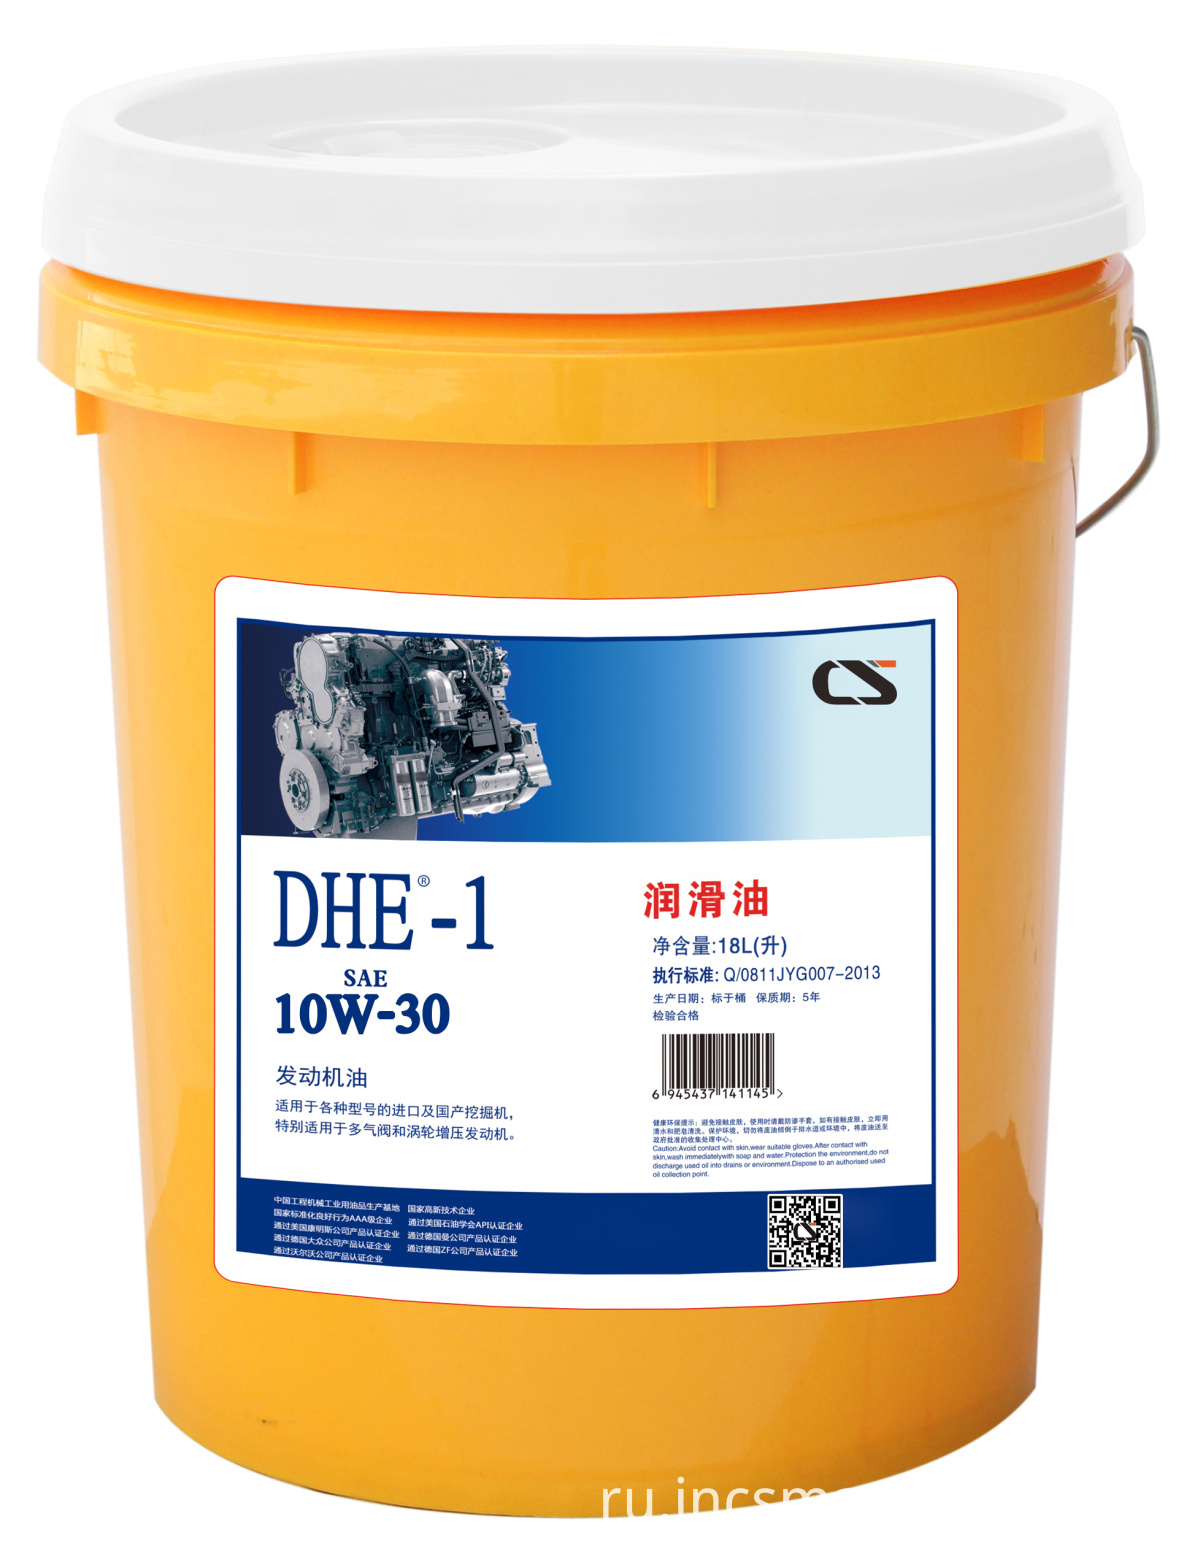 engine oil DHE-1 SAE 10W-30